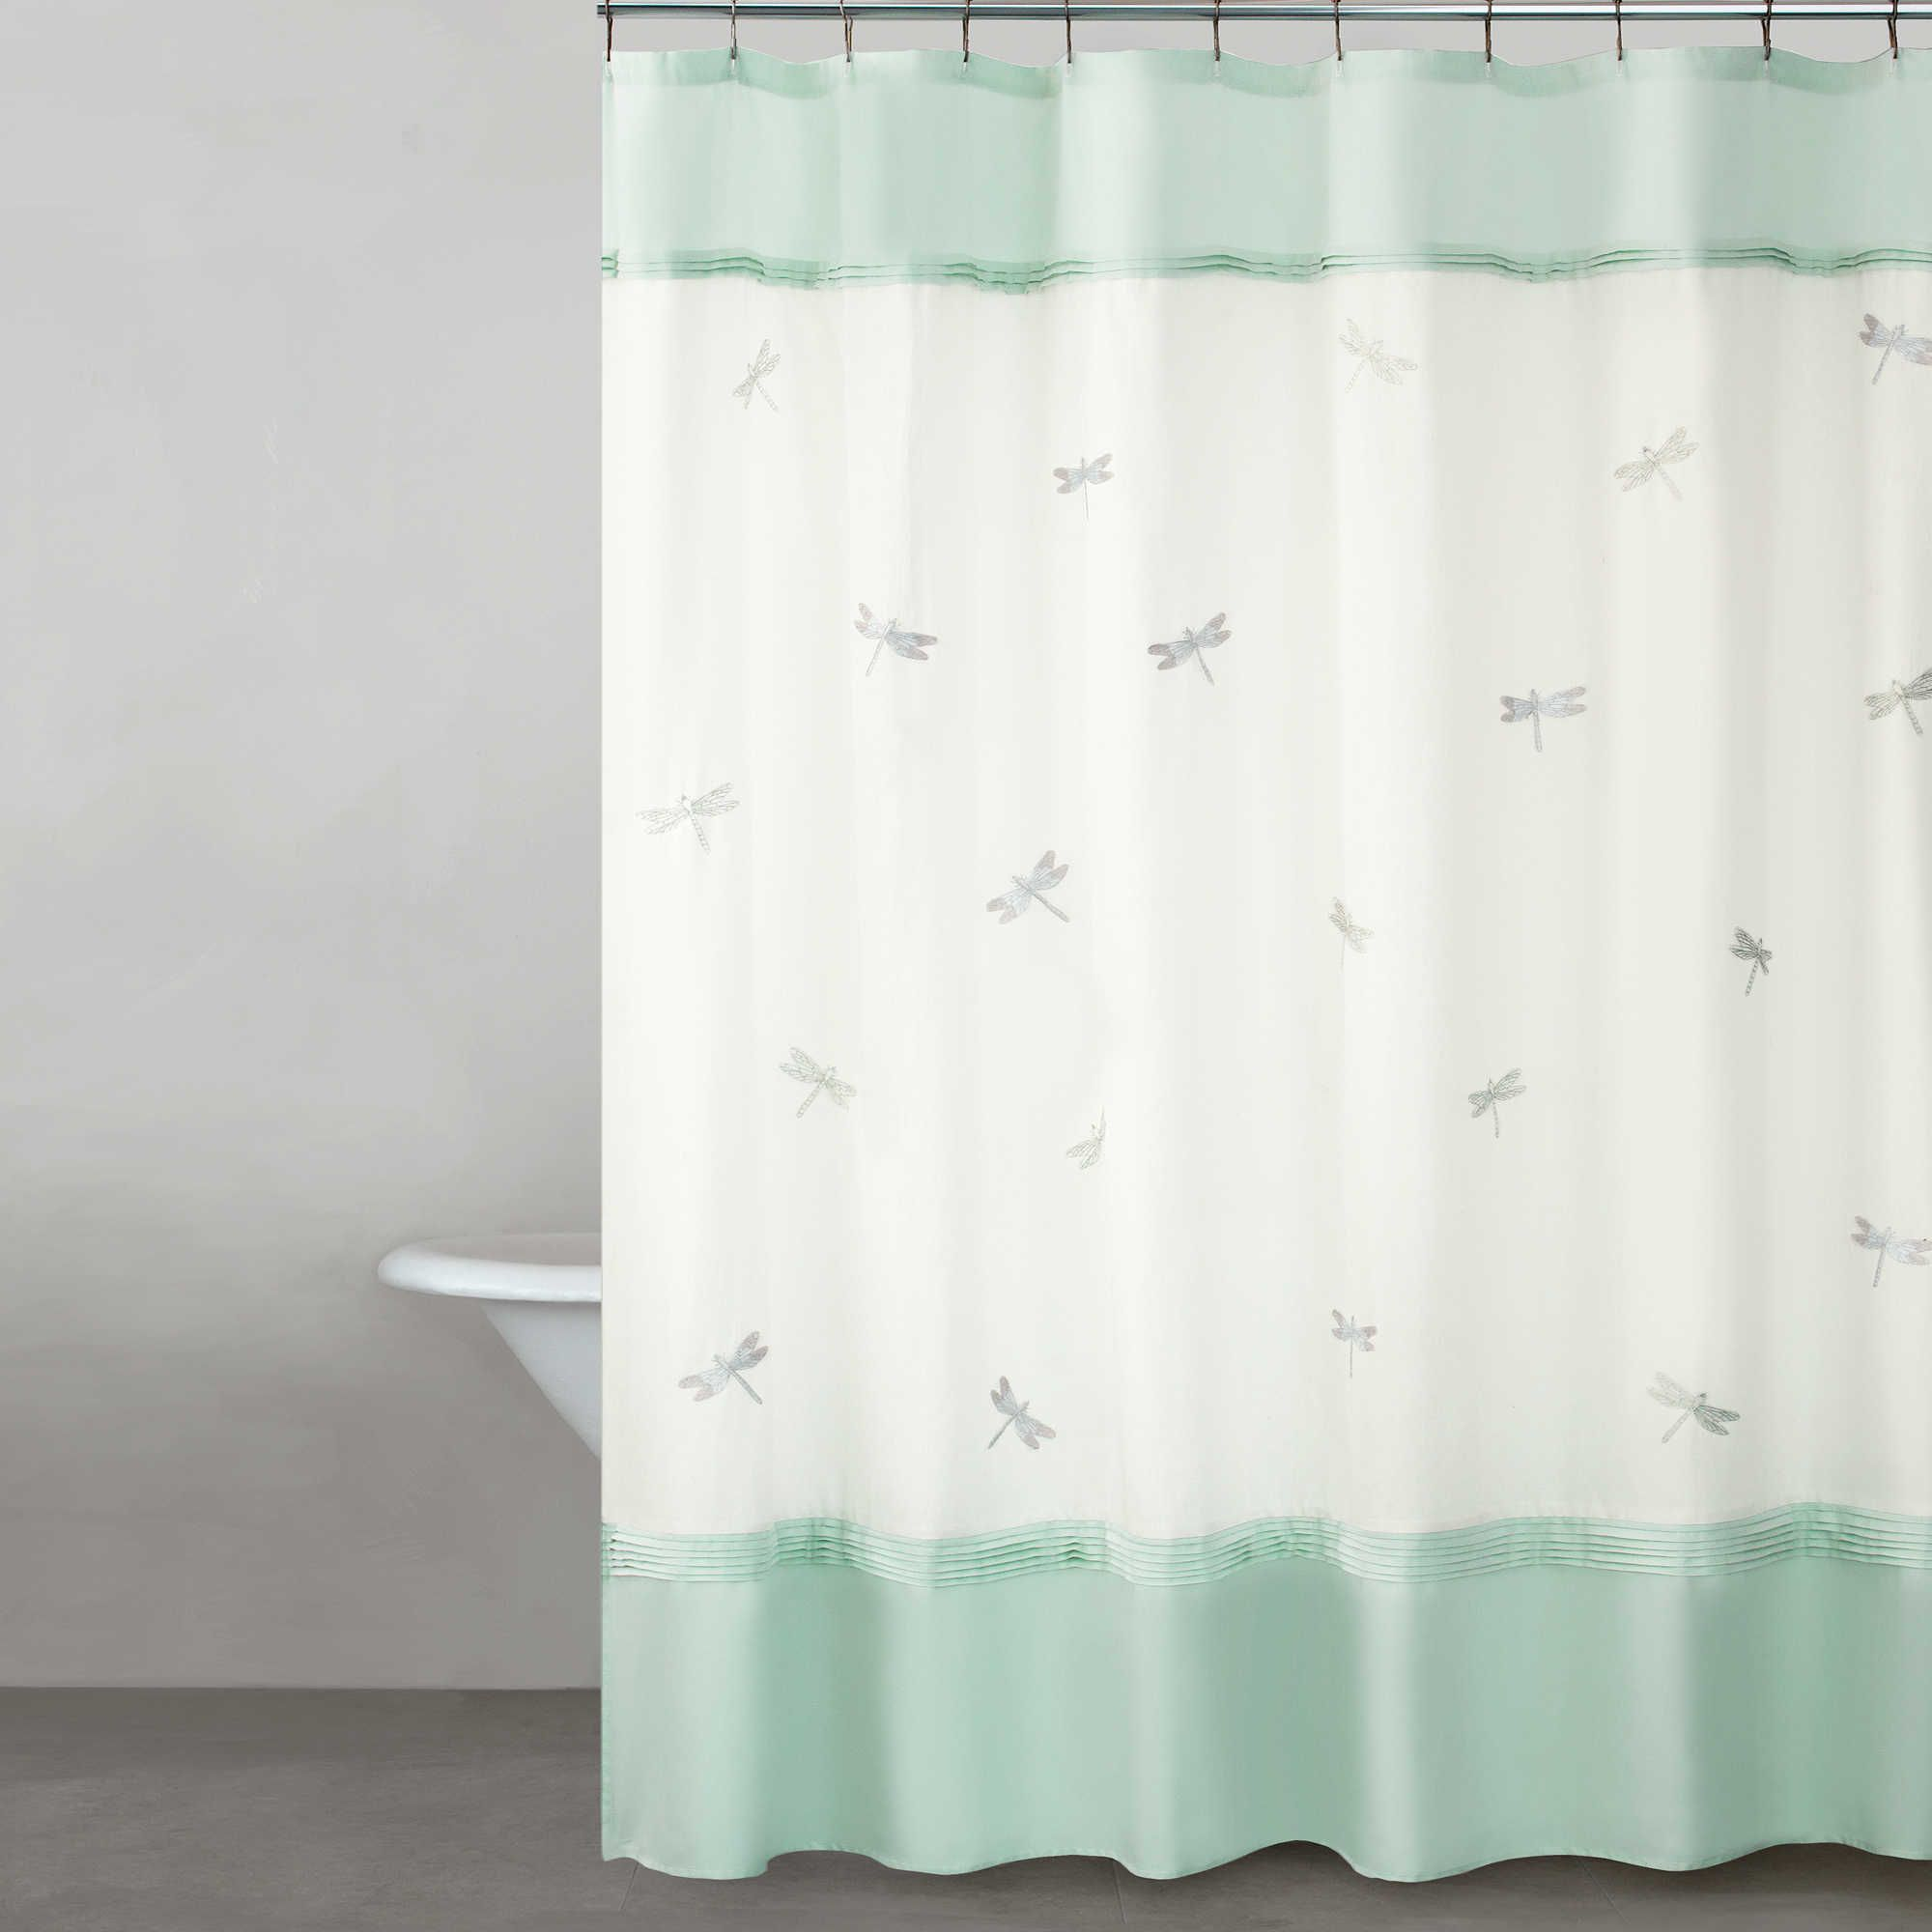 Kate Spade New York Dragonfly Drive 72 Striped Shower Curtains